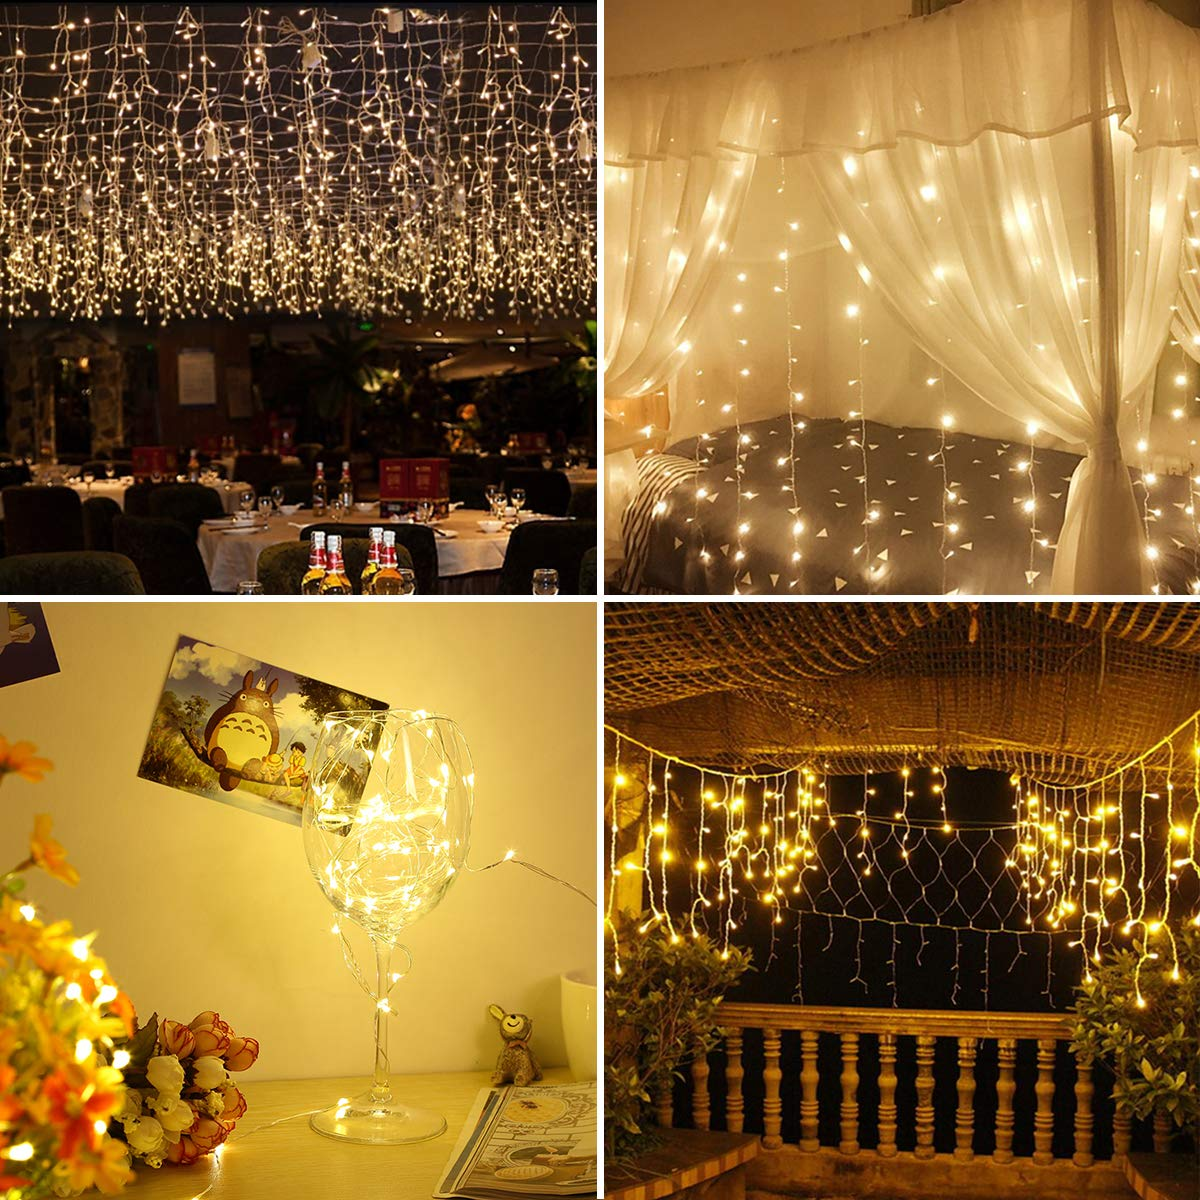 GreenClick Window Curtain String Lights, 32.8ft 480 Leds Fairy String Lights Wedding Party Garden Bedroom Outdoor Indoor Decorations,Waterproof, 8 Lighting Modes, UL Listed Adapter (Warm White) by GreenClick (Image #6)